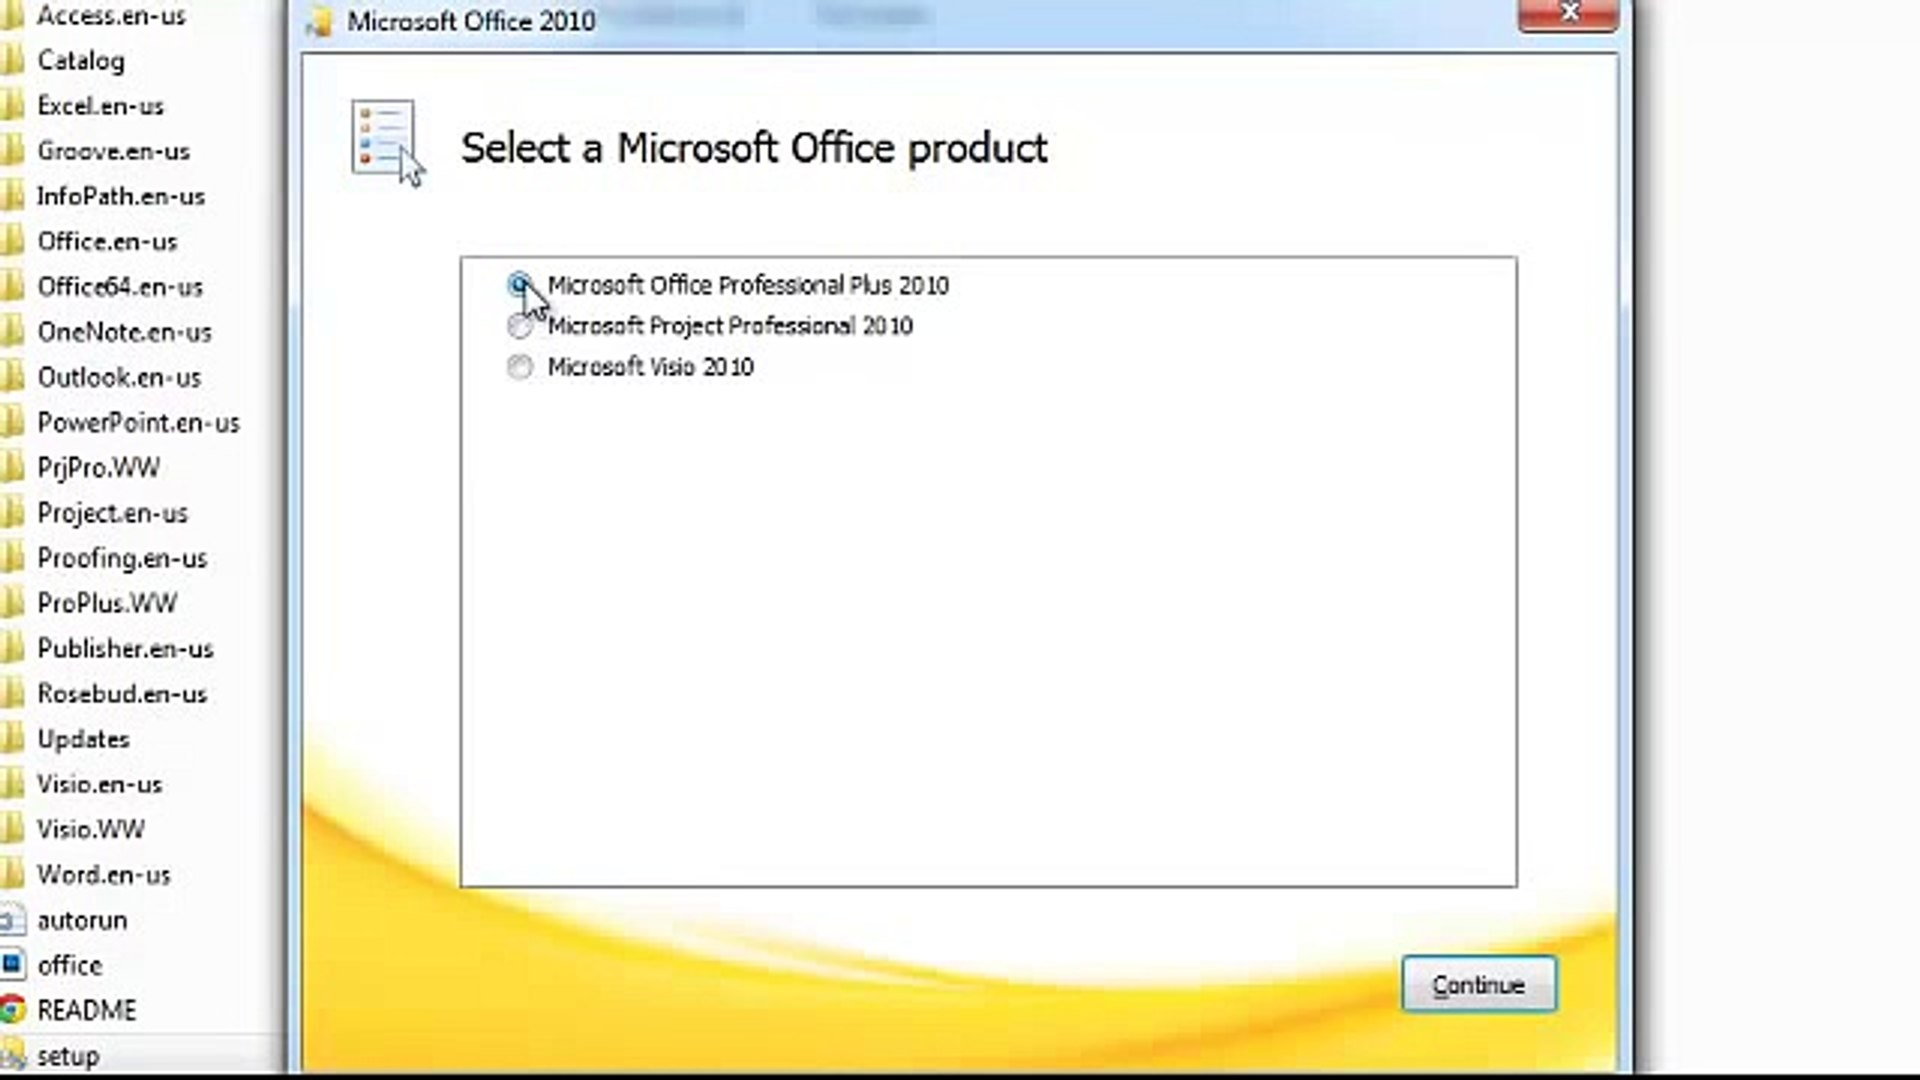 Activation Ms Office Professional Plus 2010, Ms Project 2010 and Ms Visio 2010